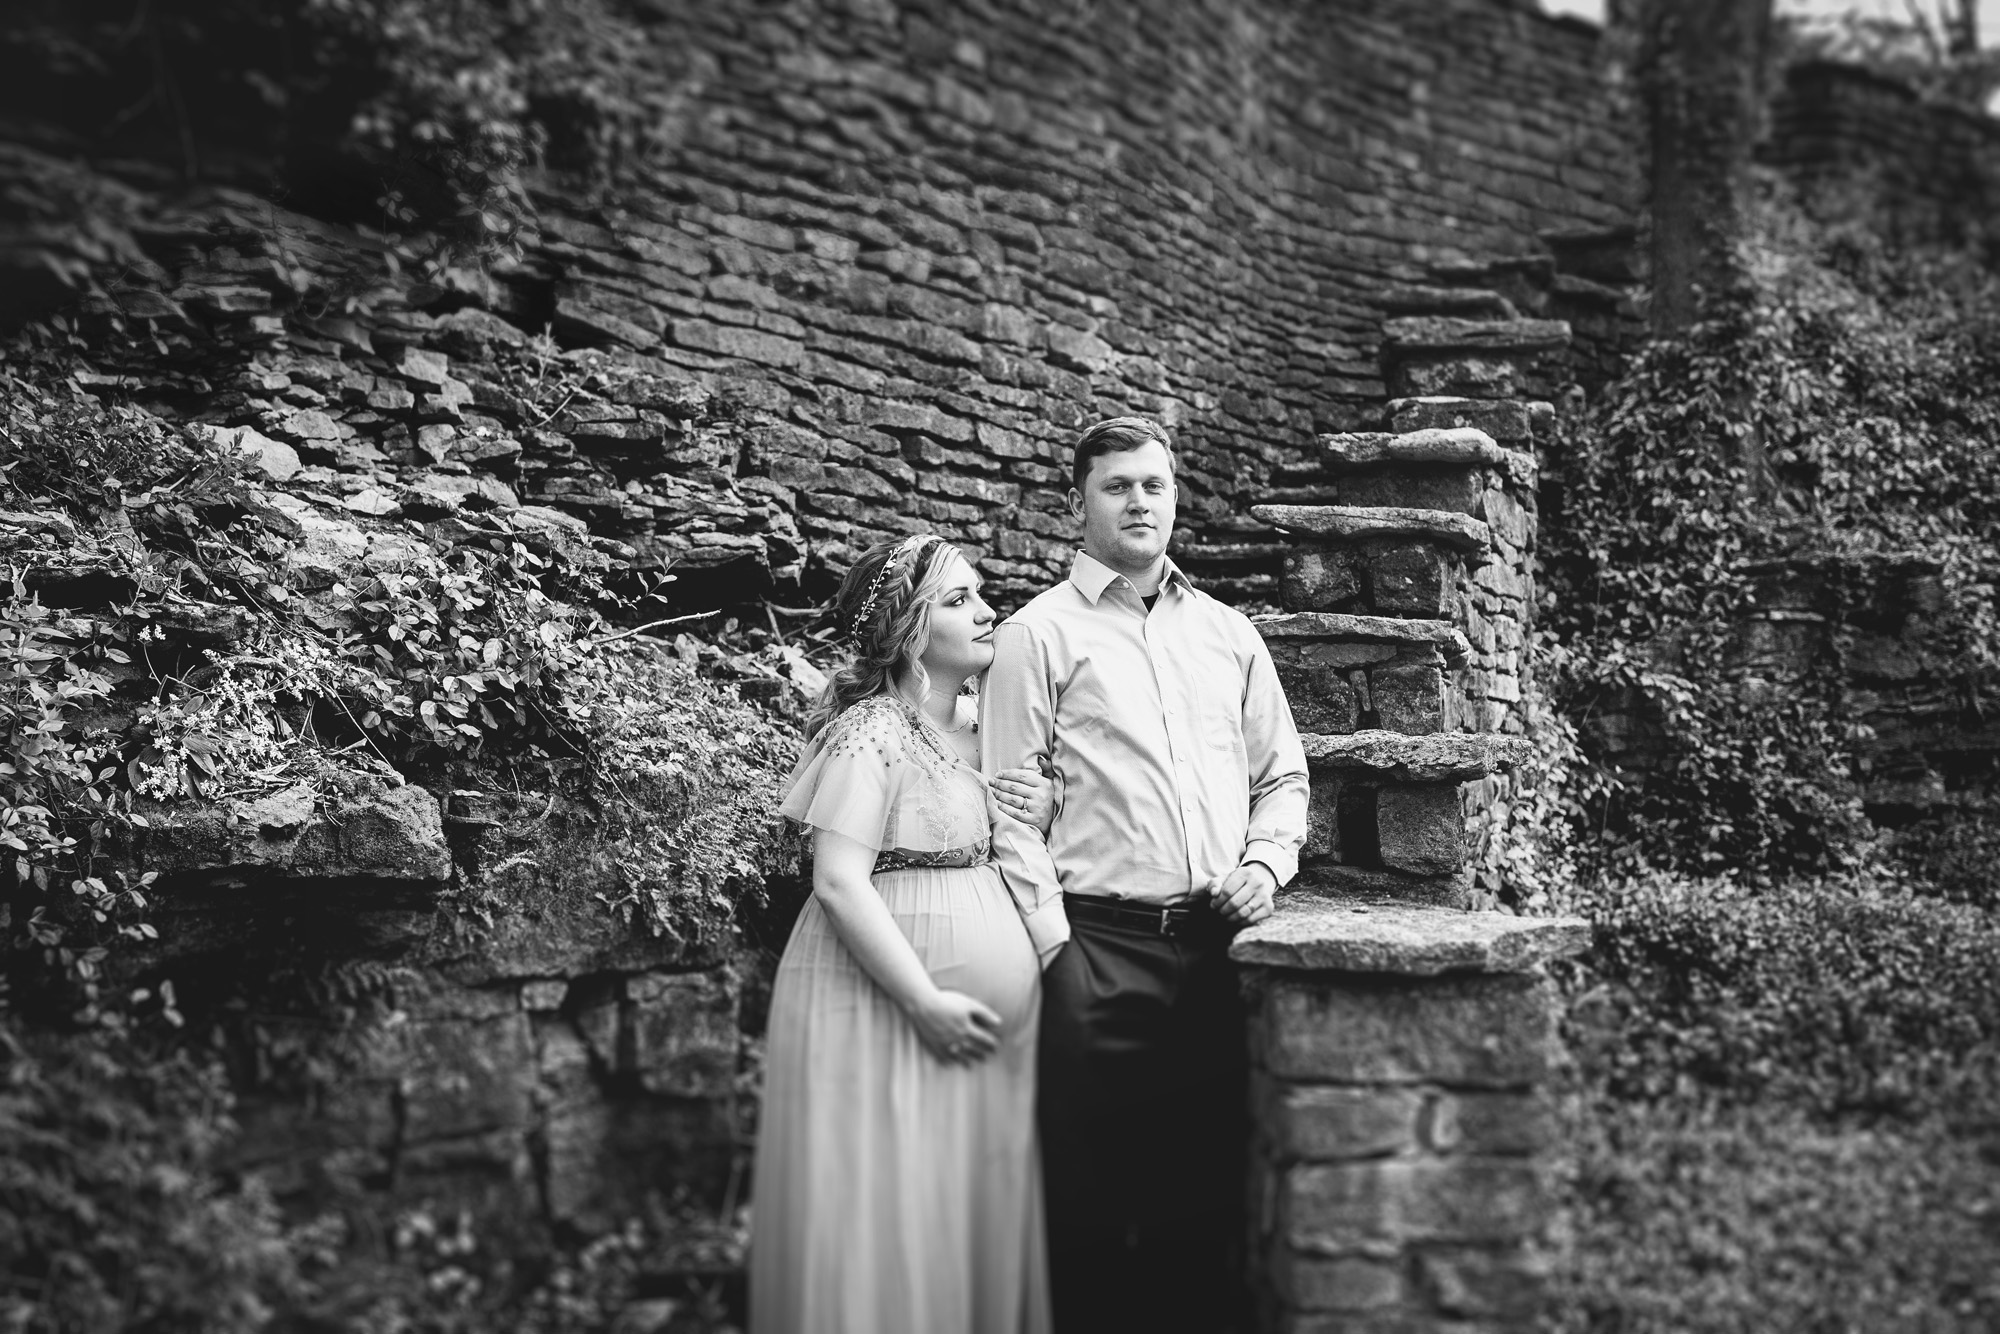 Seriously_Sabrina_Photography_Lexington_Kentucky_Fairytale_Maternity_Portraits_Horse_Park_Reynolds_29.jpg